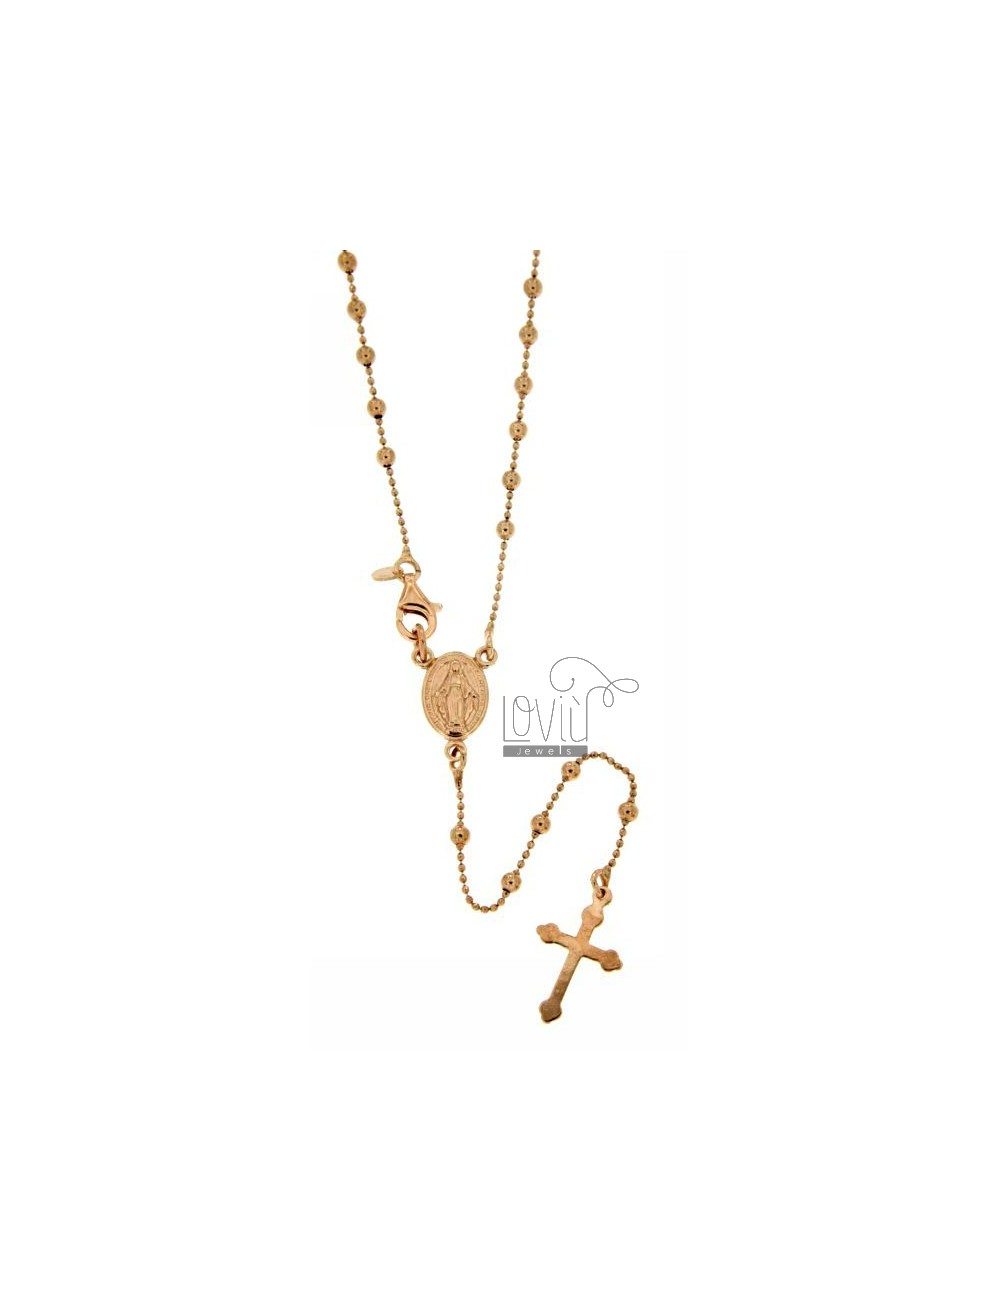 ROSARY BEAD CHAIN &8203&8203NECKLACE WITH SMOOTH BALL 2.5 MM 50 CM SILVER ROSE GOLD PLATED TIT 925